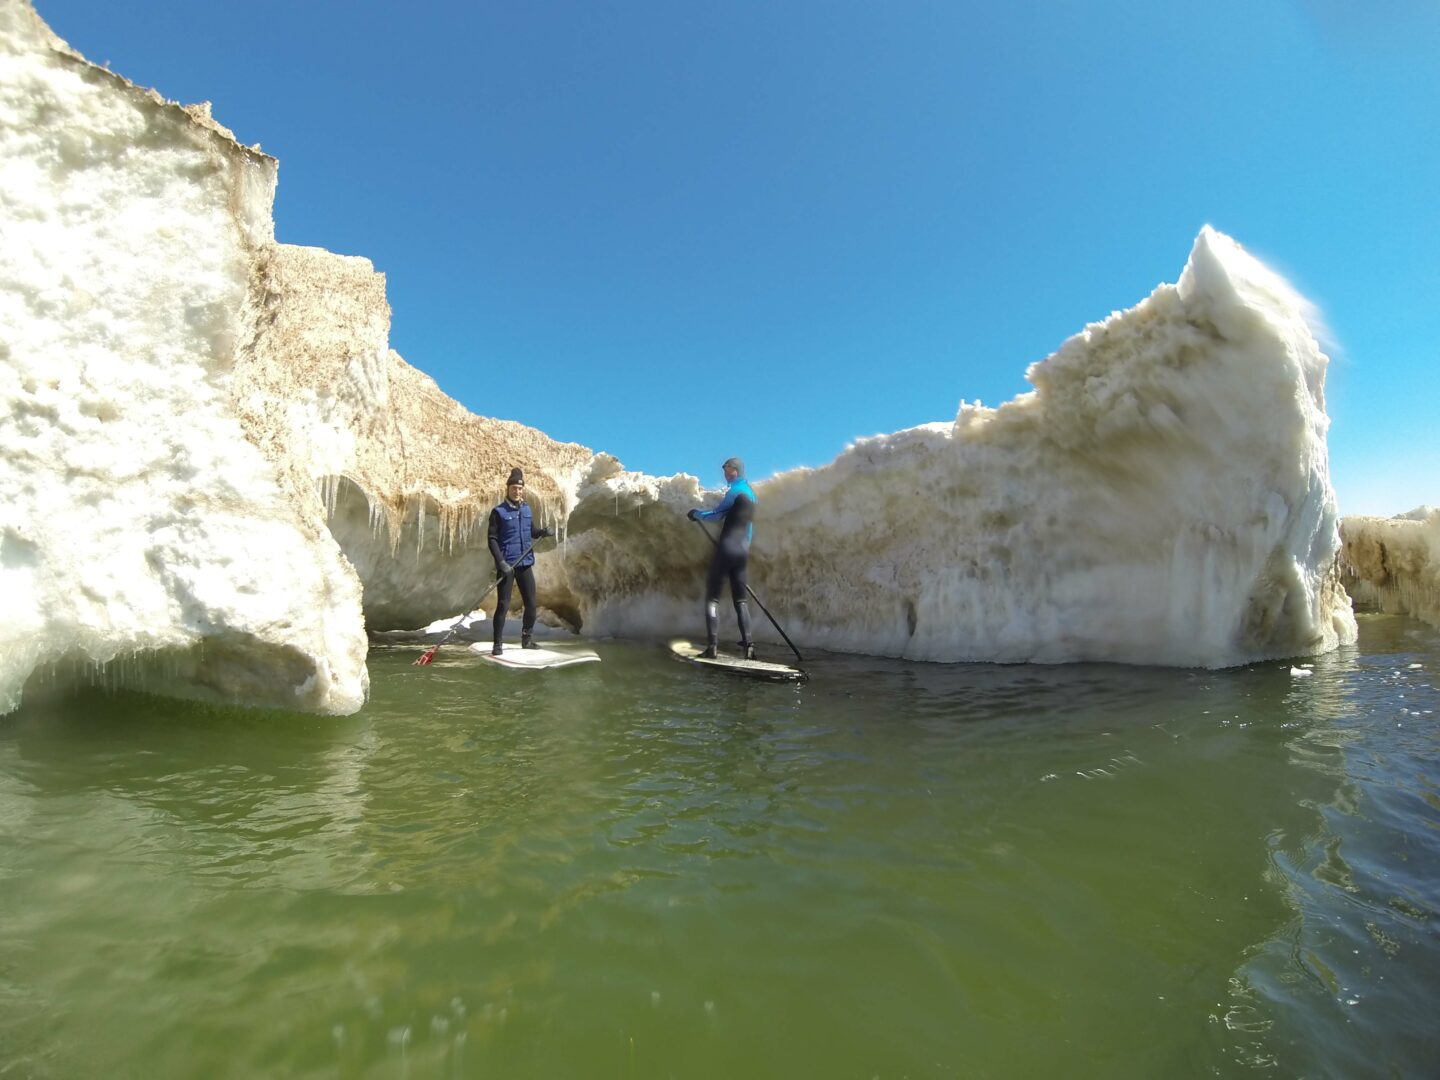 SUP adventure out to icebergs leads to images of winter's remains on Lake Michigan [VIDEO]